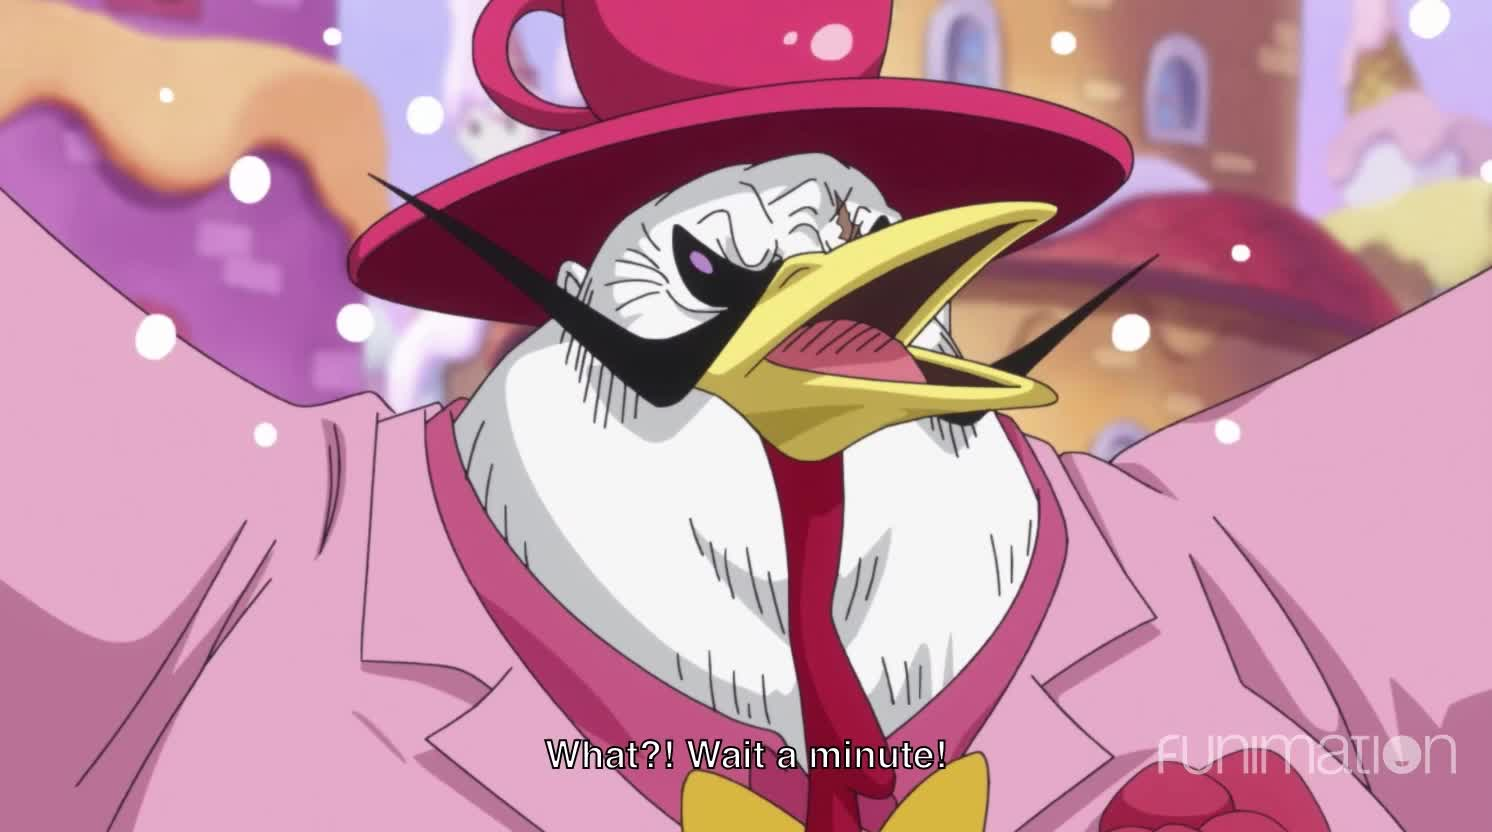 One Piece, One Piece episode 843, OnePiece, anime, ep843, funimation, funny, flappy bird GIFs